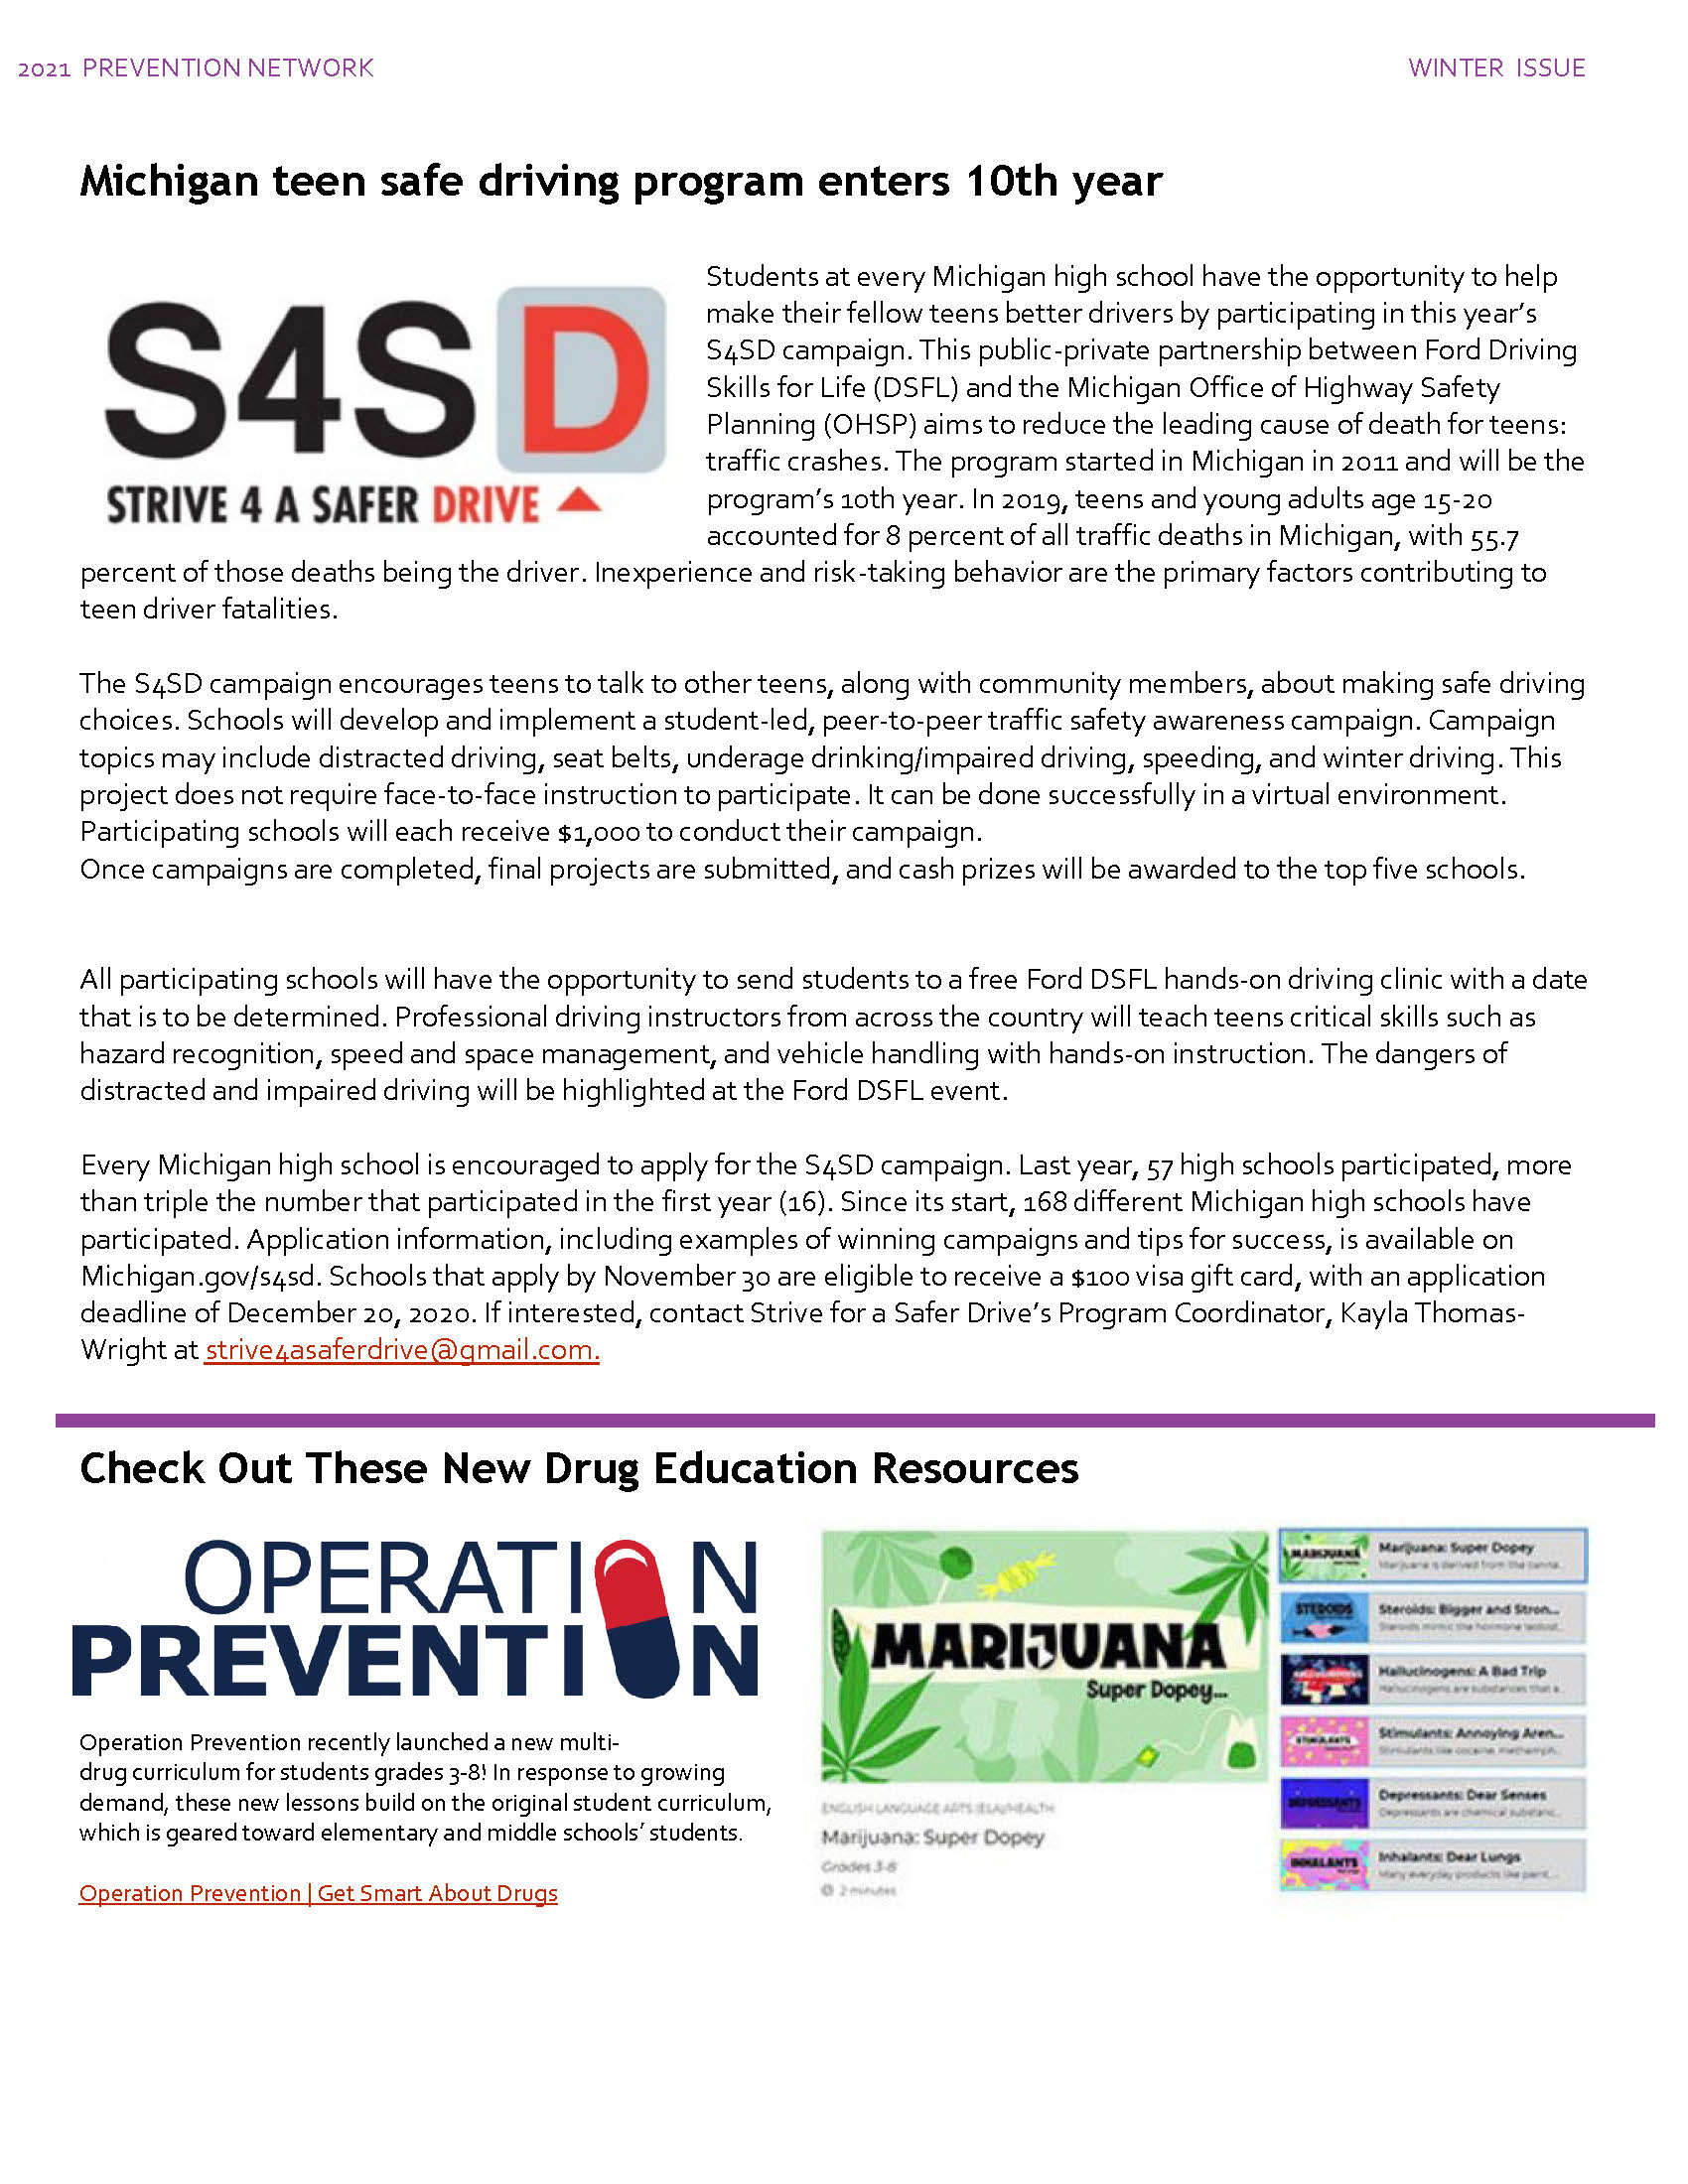 S4SD & Operation Prevention